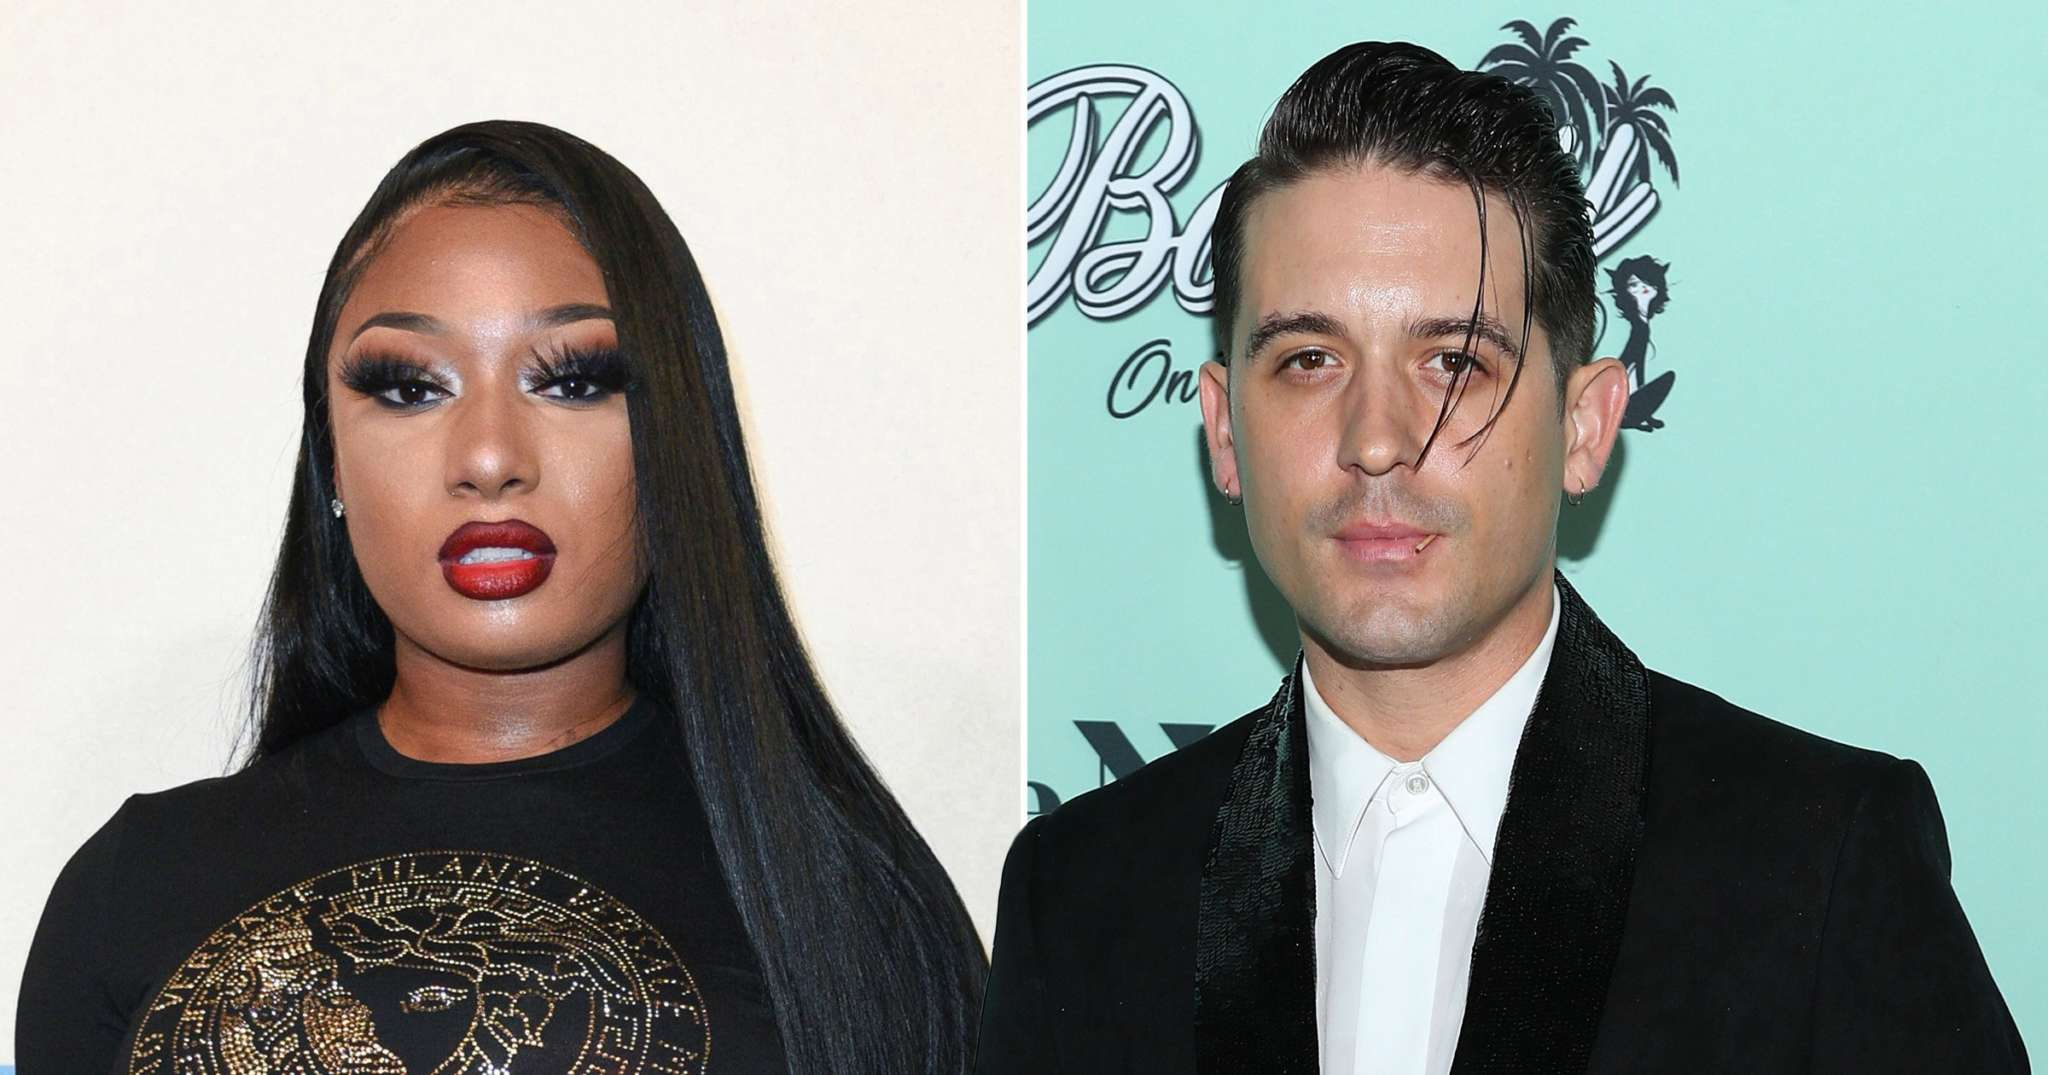 G-Eazy Hooks Up With Megan Thee Stallion And People Say It's Just PR